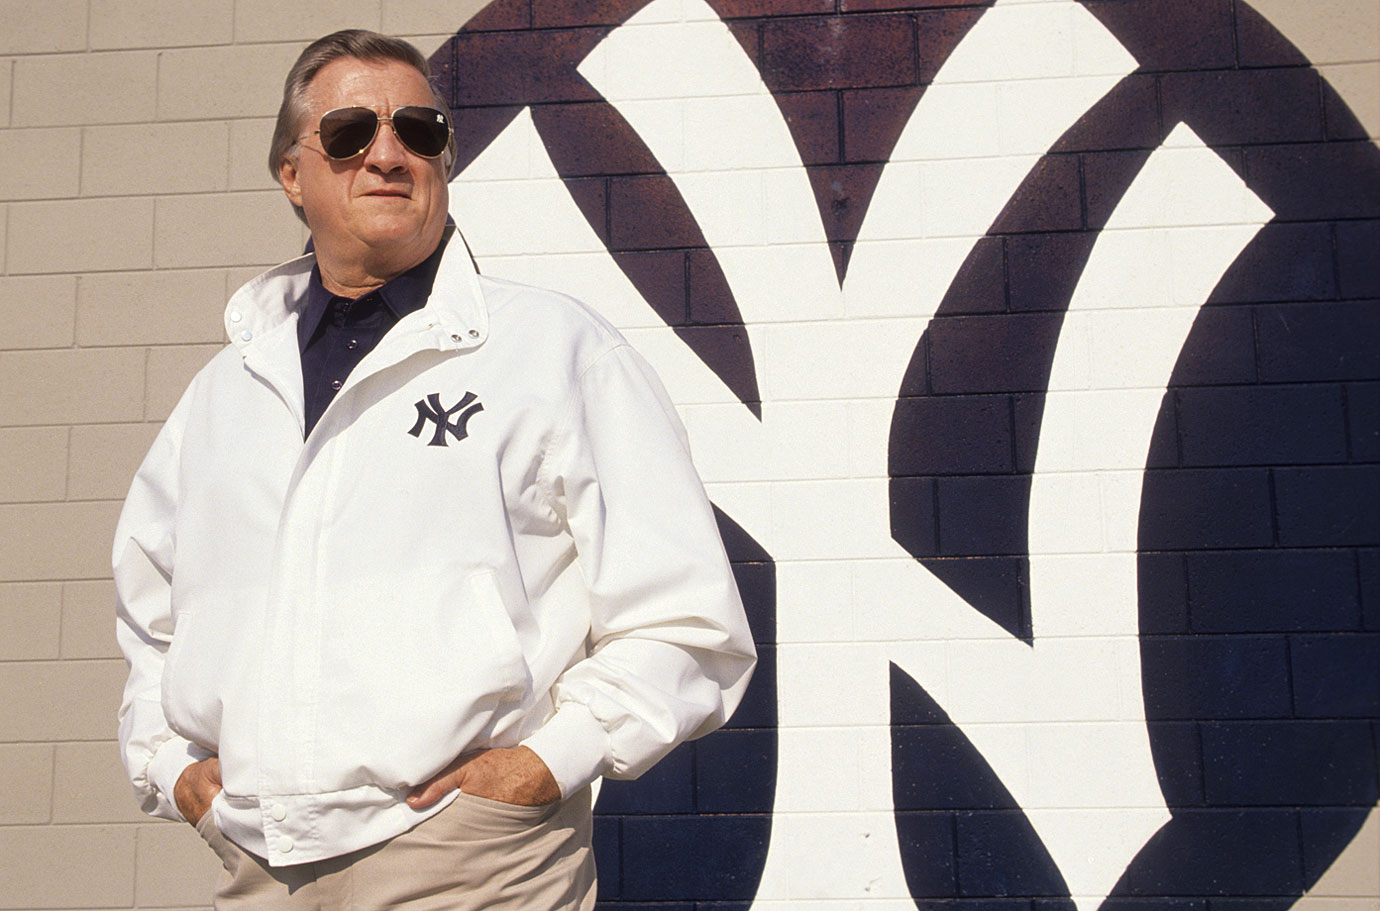 George Steinbrenner poses outside of the New York Yankees Minor League Complex on May 3, 1990 in Tampa, Fla.